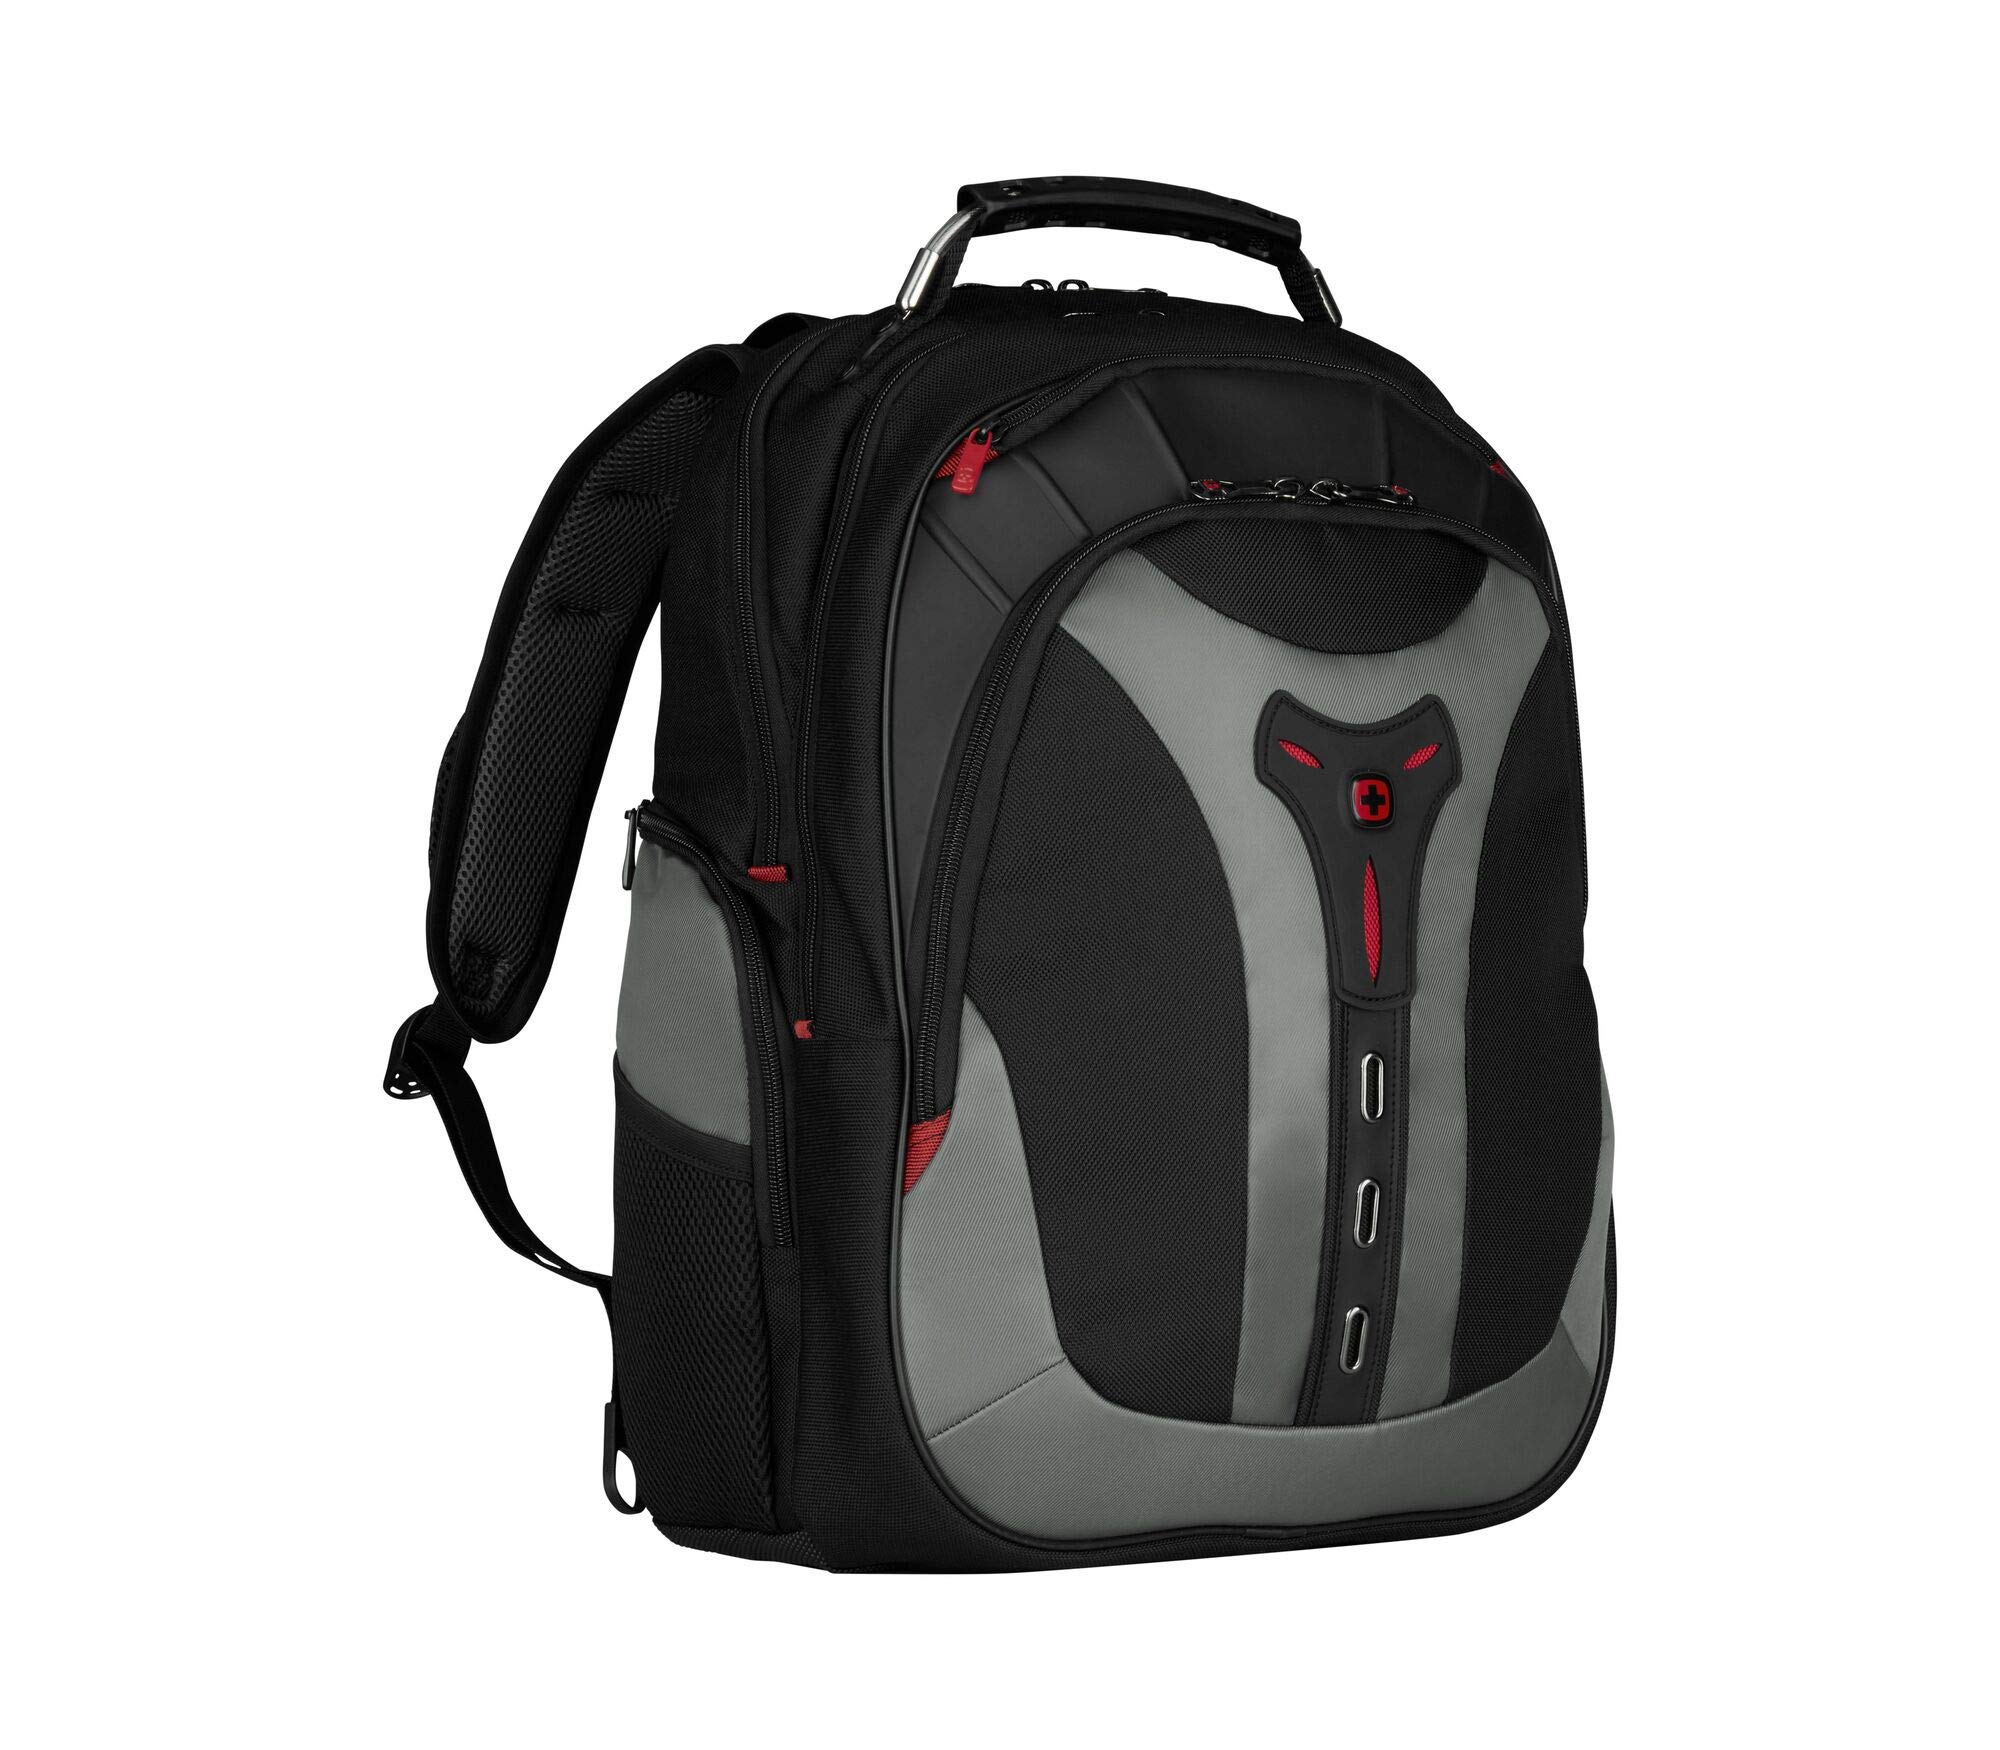 PEGASUS from SwissGear by Wenger Computer Backpack by Wenger